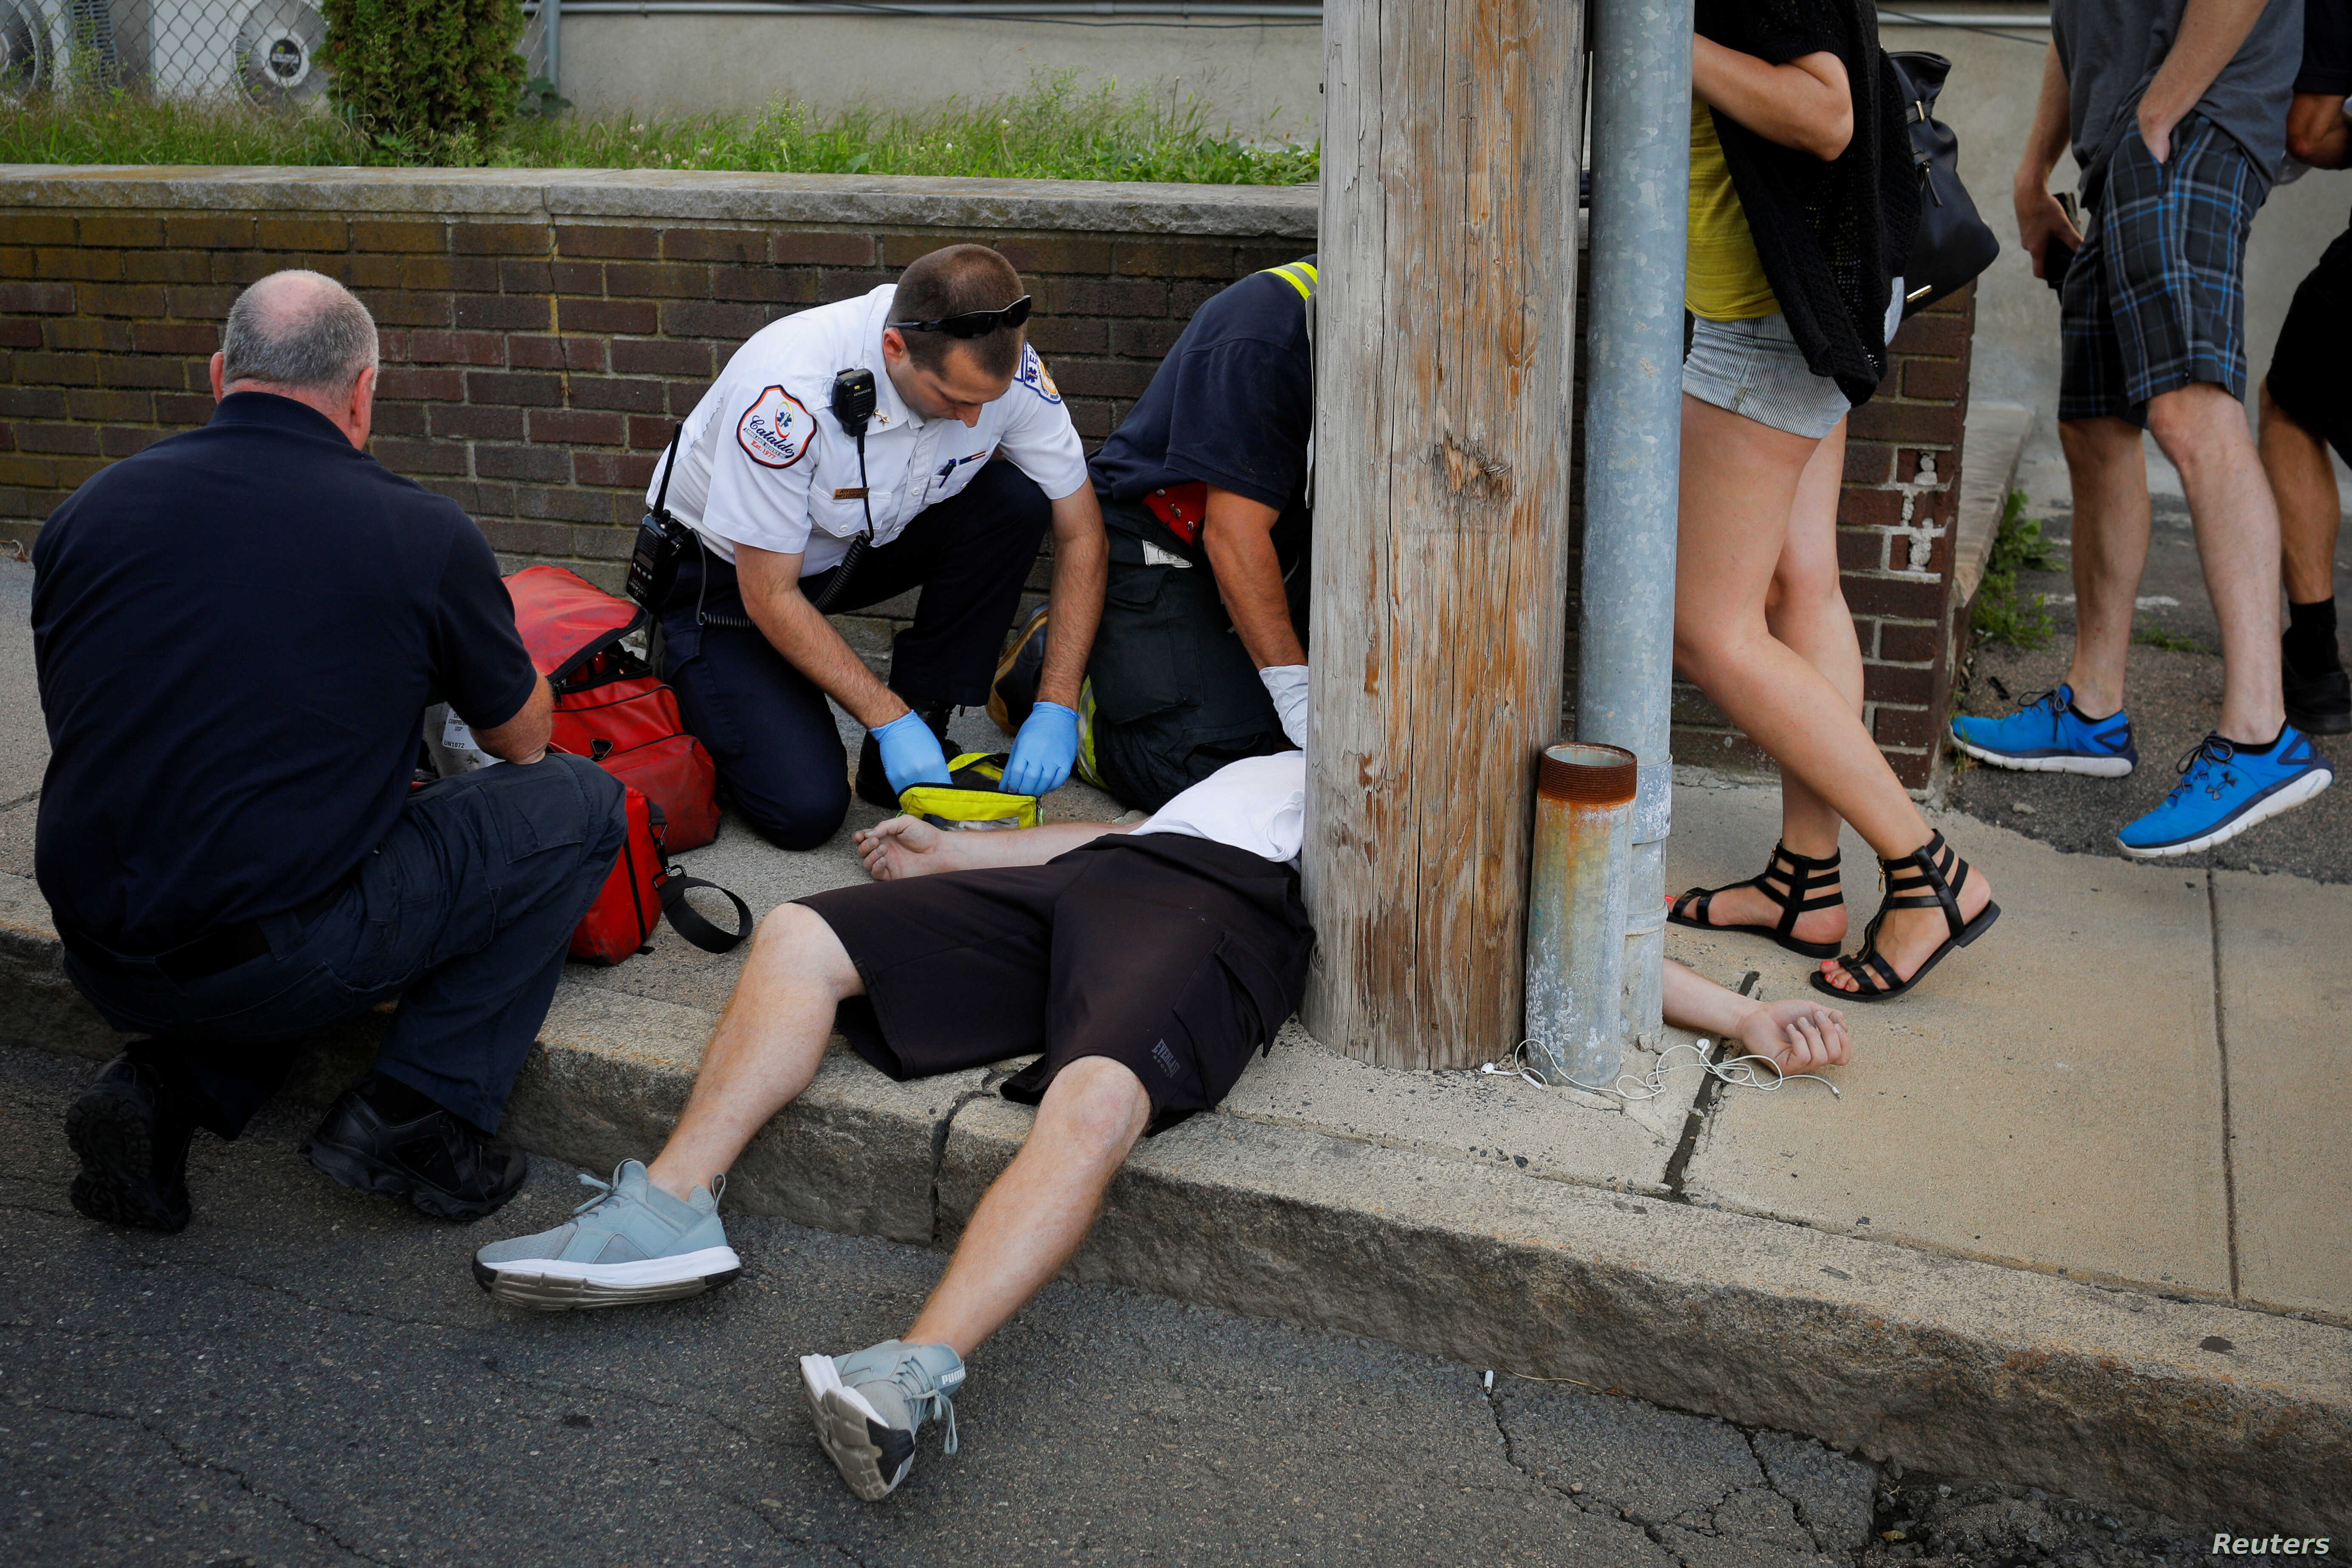 Cataldo Ambulance medics and other first responders revive a 32-year-old man who was found unresponsive and not breathing after an opioid overdose on a sidewalk in the Boston suburb of Everett, Massachusetts, Aug. 23, 2017.